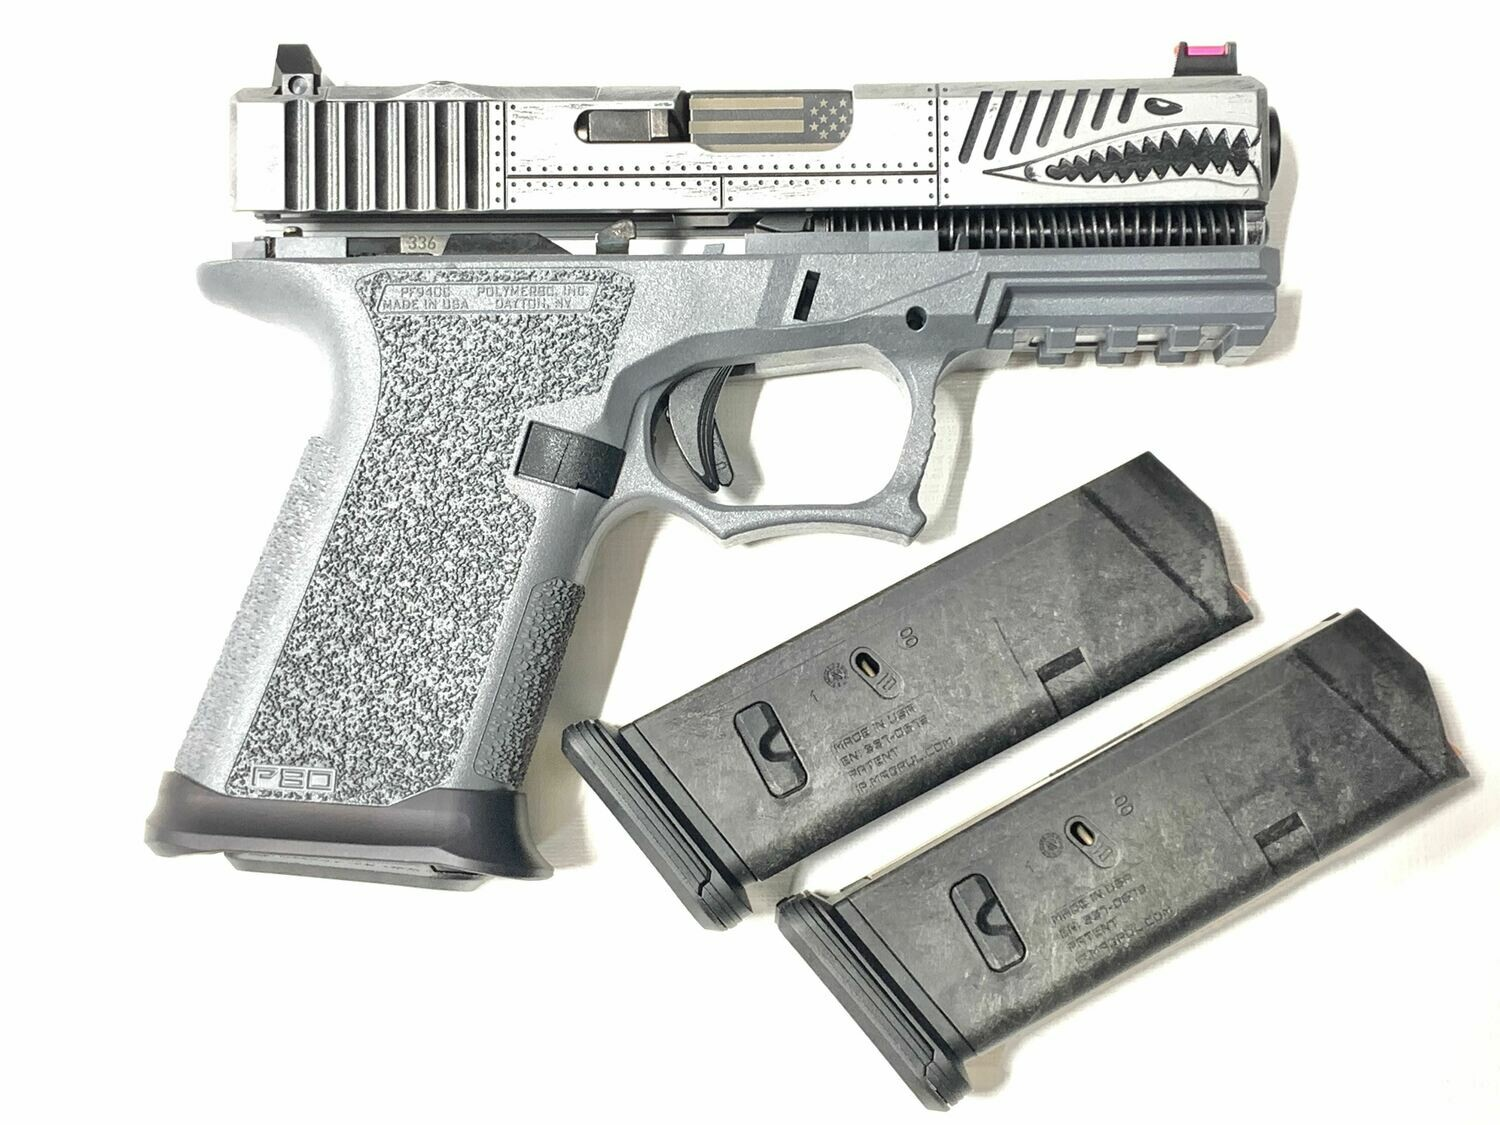 Glock 17 P40 Warhawk Battleworn Gray - 80% Polymer80 Frame Pistol Kit - Comes With 3 Magpul 10rd Magazines